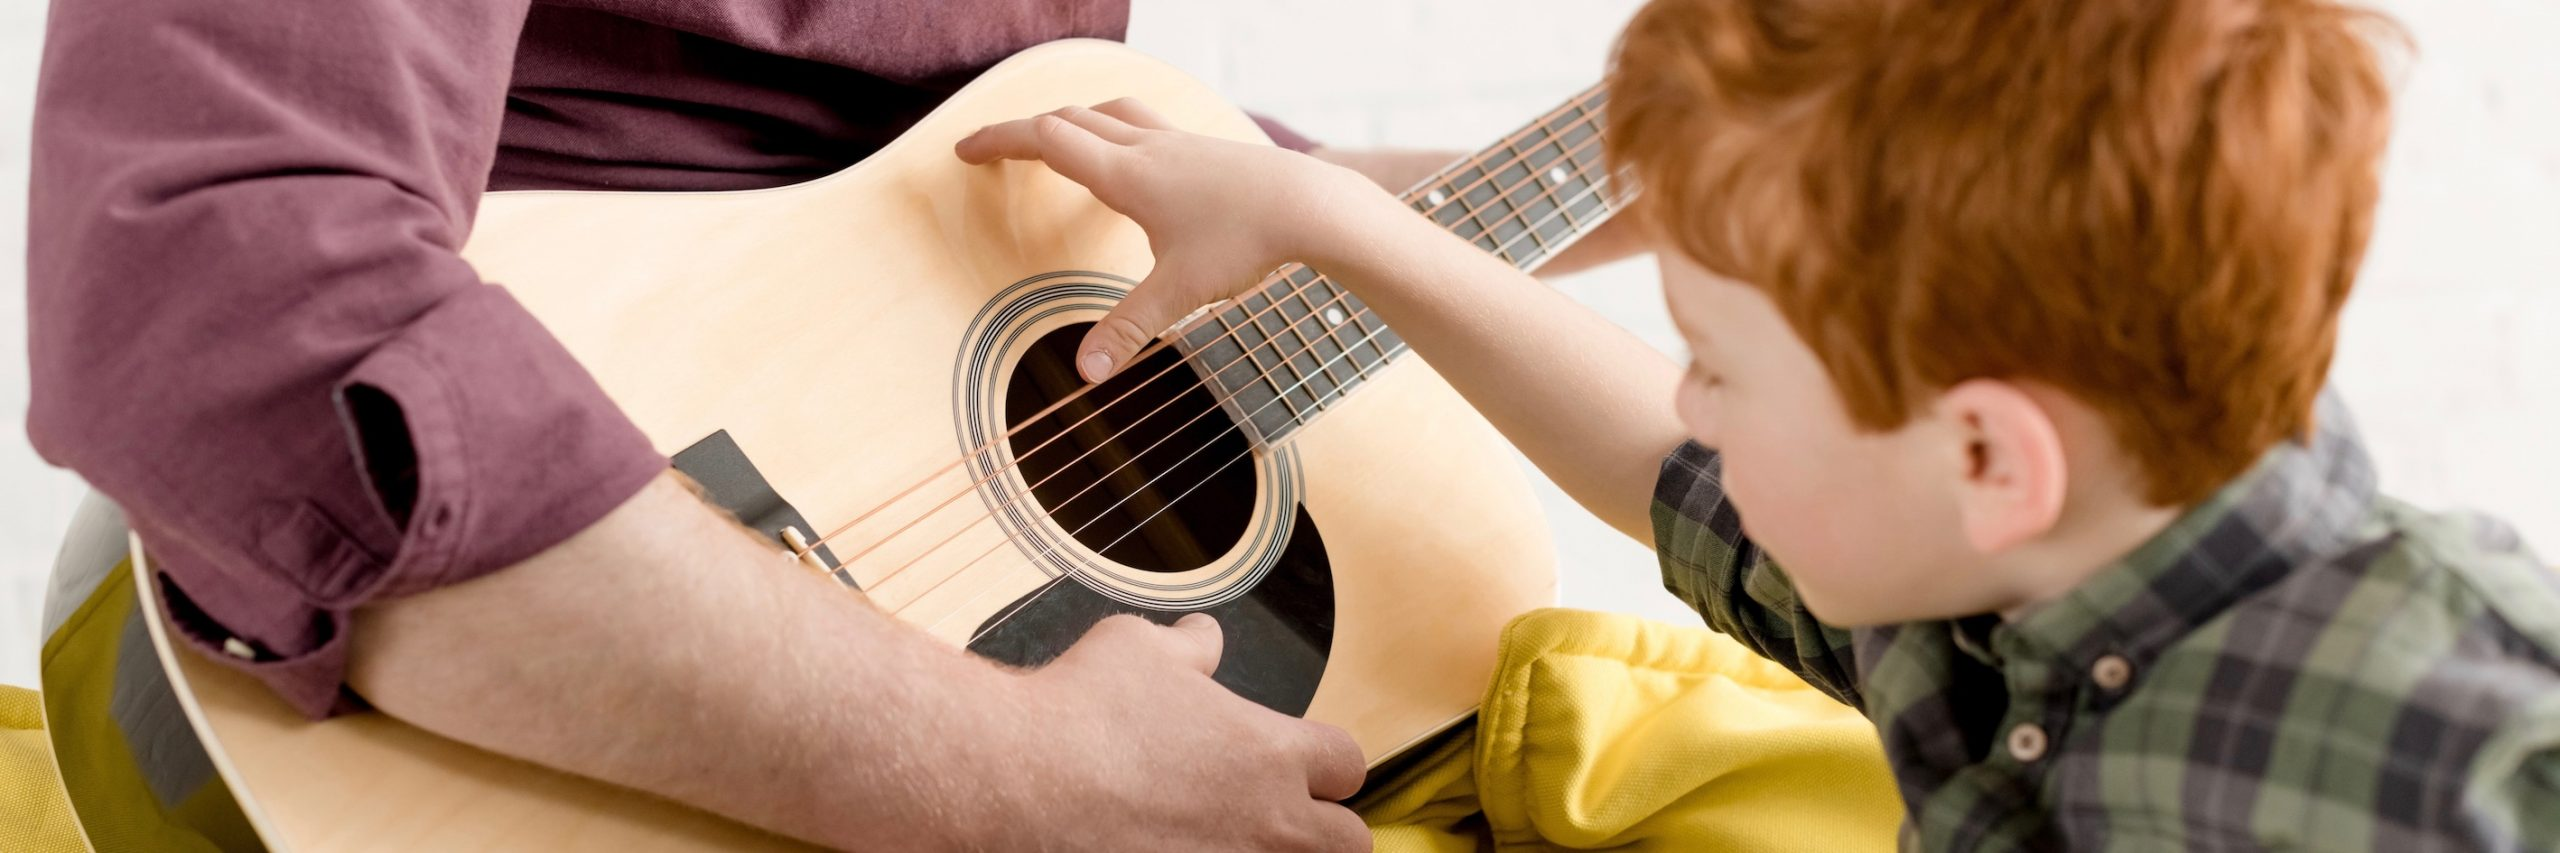 Kavli Trust grants NOK 10 million for new study on music therapy and autism